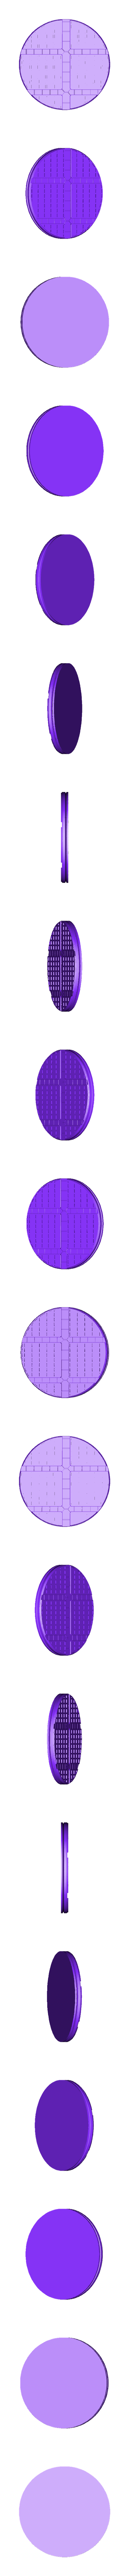 """Grid_-_2_inch_-_B.stl Download free STL file 1"""" & 2' Round Bases - The Ignis Quadrant • 3D printing template, ec3d"""